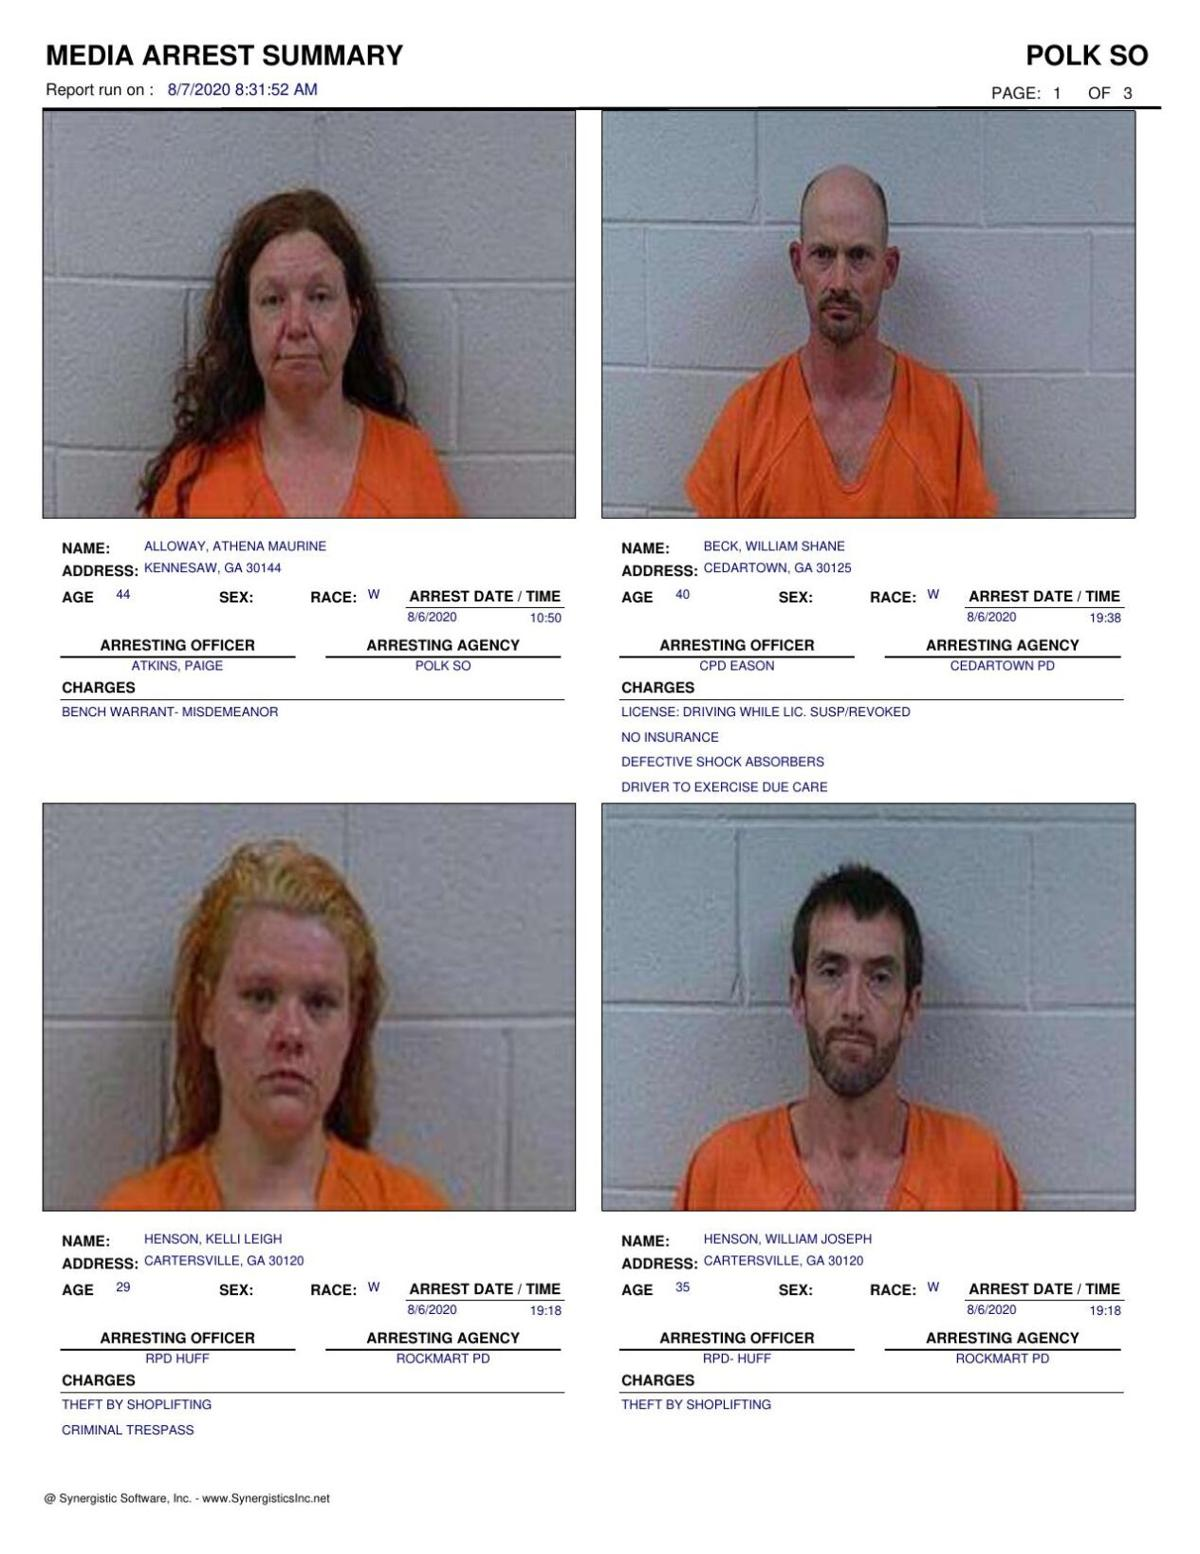 Polk County Jail Report for Friday, Aug. 7